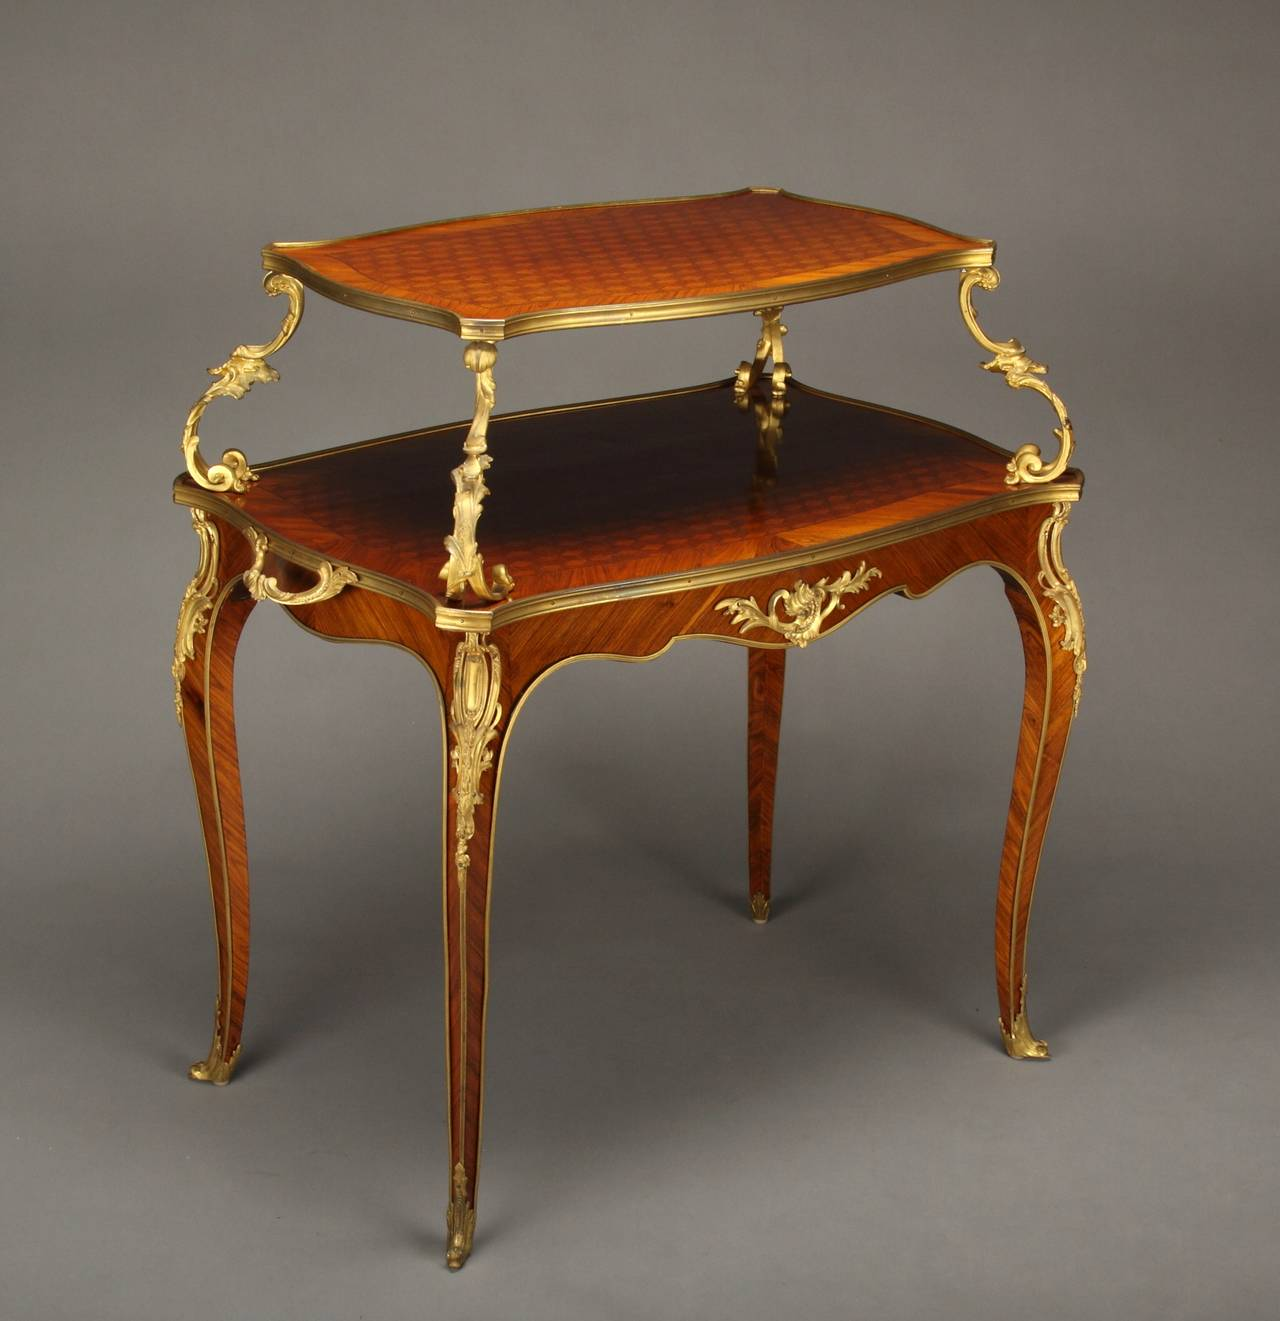 A French gilt bronze-mounted Louis XV style parquetry two-tier/pastry table - French Antique Gilt Bronze-Mounted Parquetry Two-Tier Table Or Tea